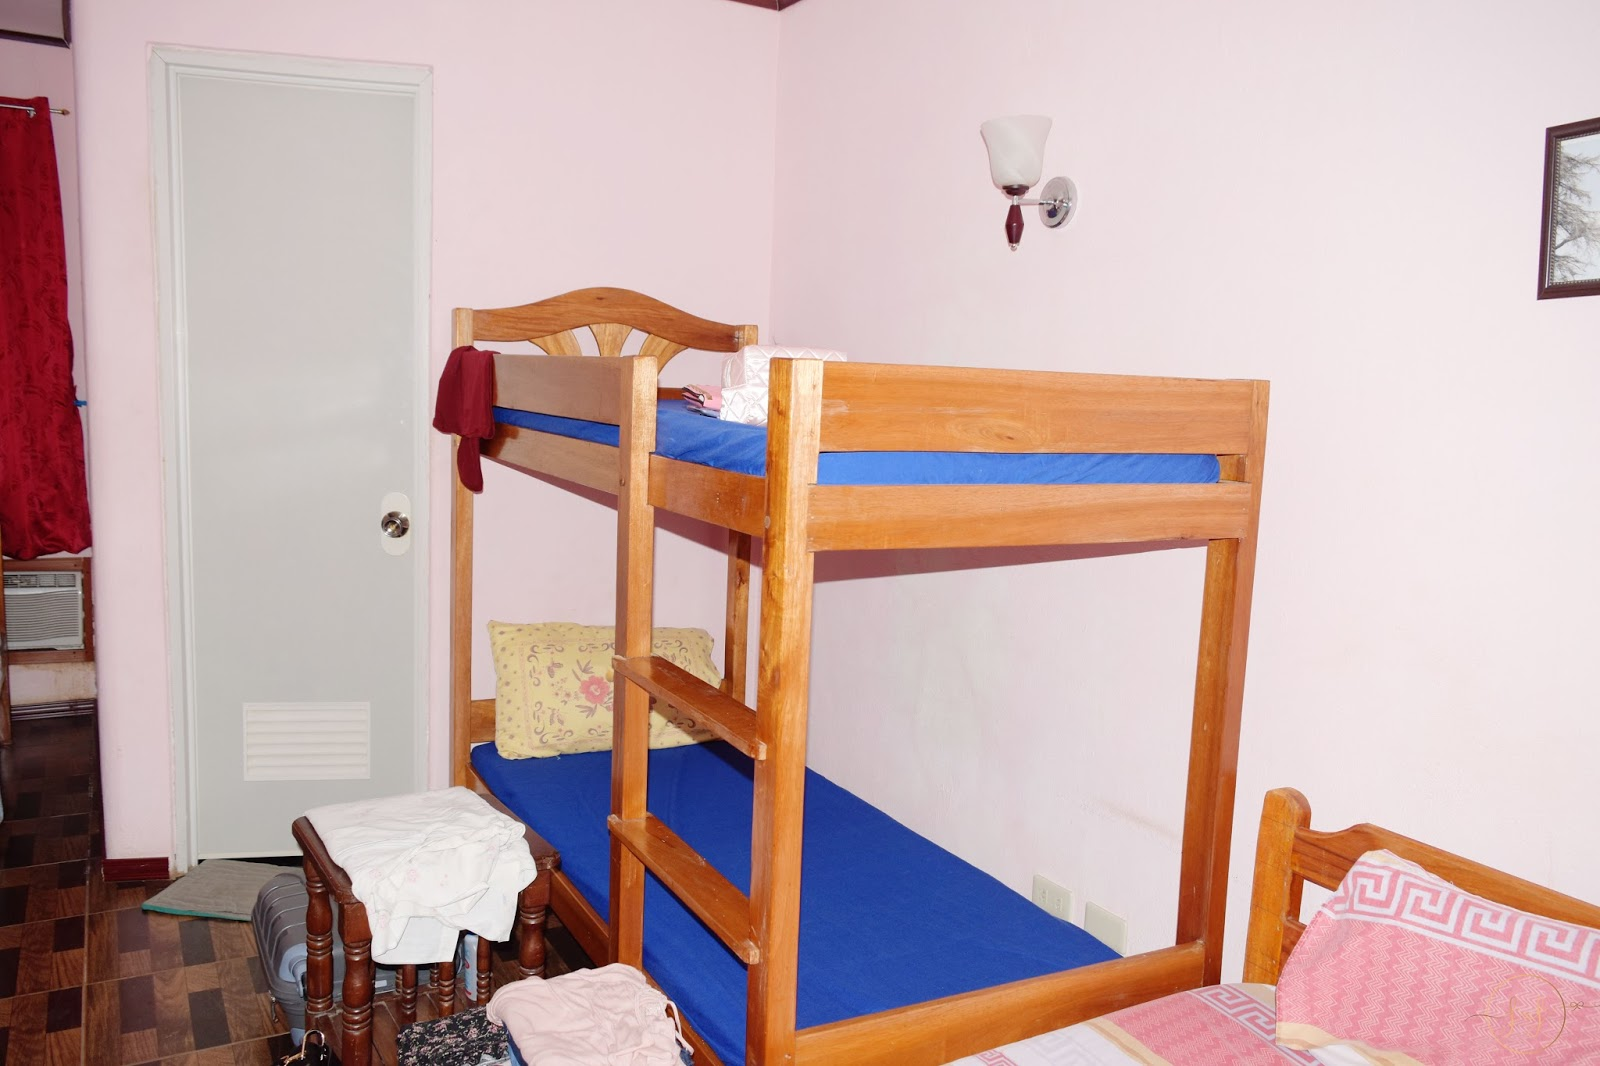 Amazing Next to my bed was bunk beds My cousin got the bottom bunk and we used the top bunk as storage It was really useful and got all our suitcases out of